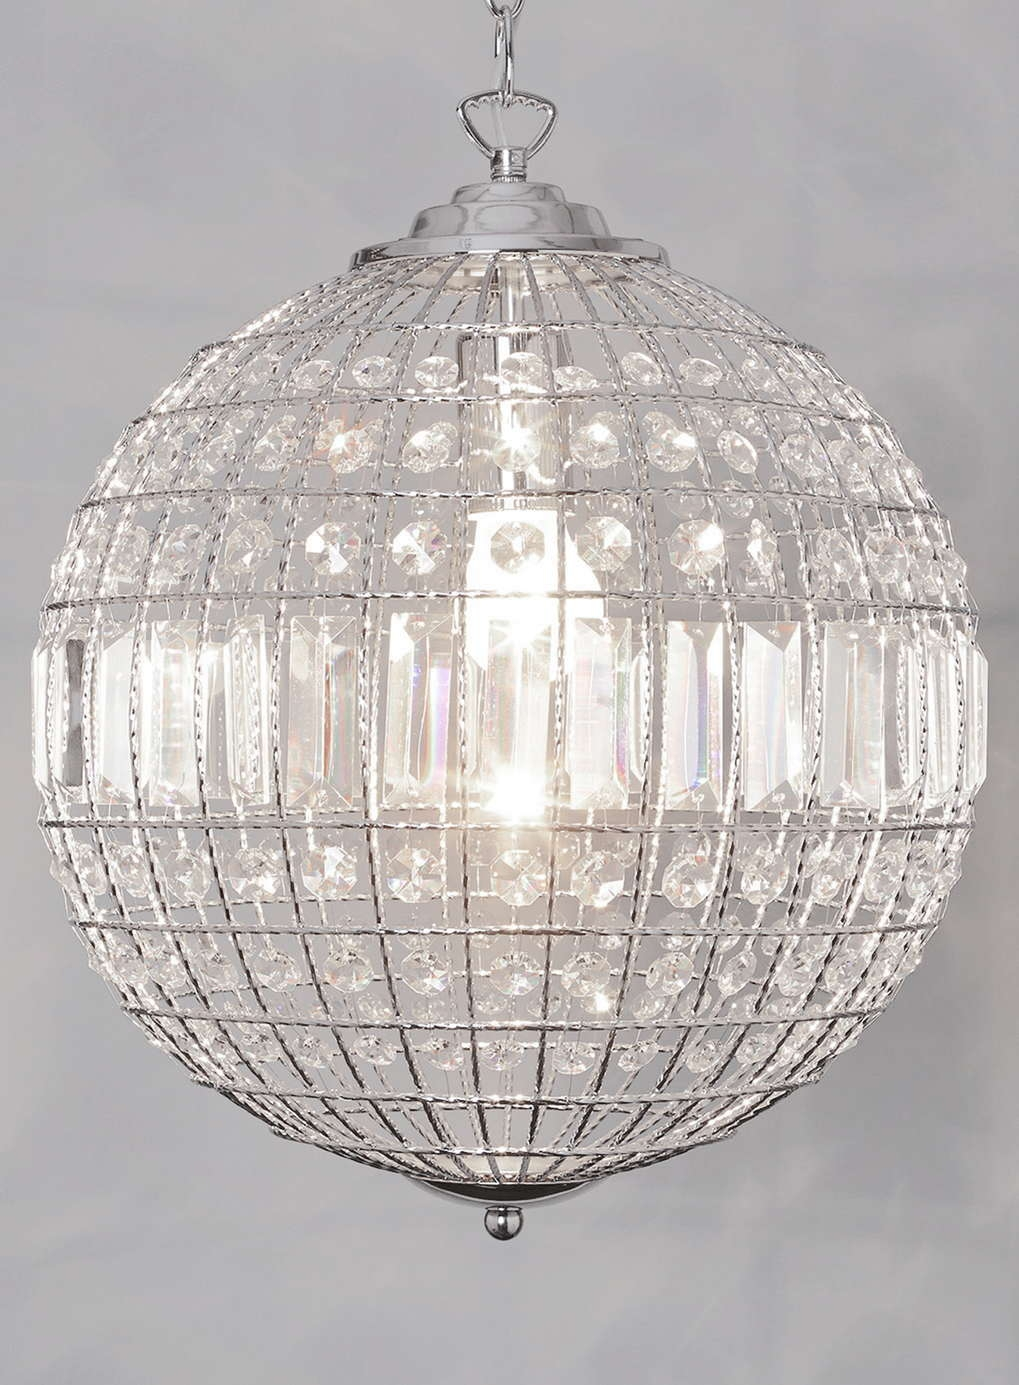 Crystal Globe Pendant Light Roselawnlutheran Within Globe Crystal Chandelier (Image 10 of 15)